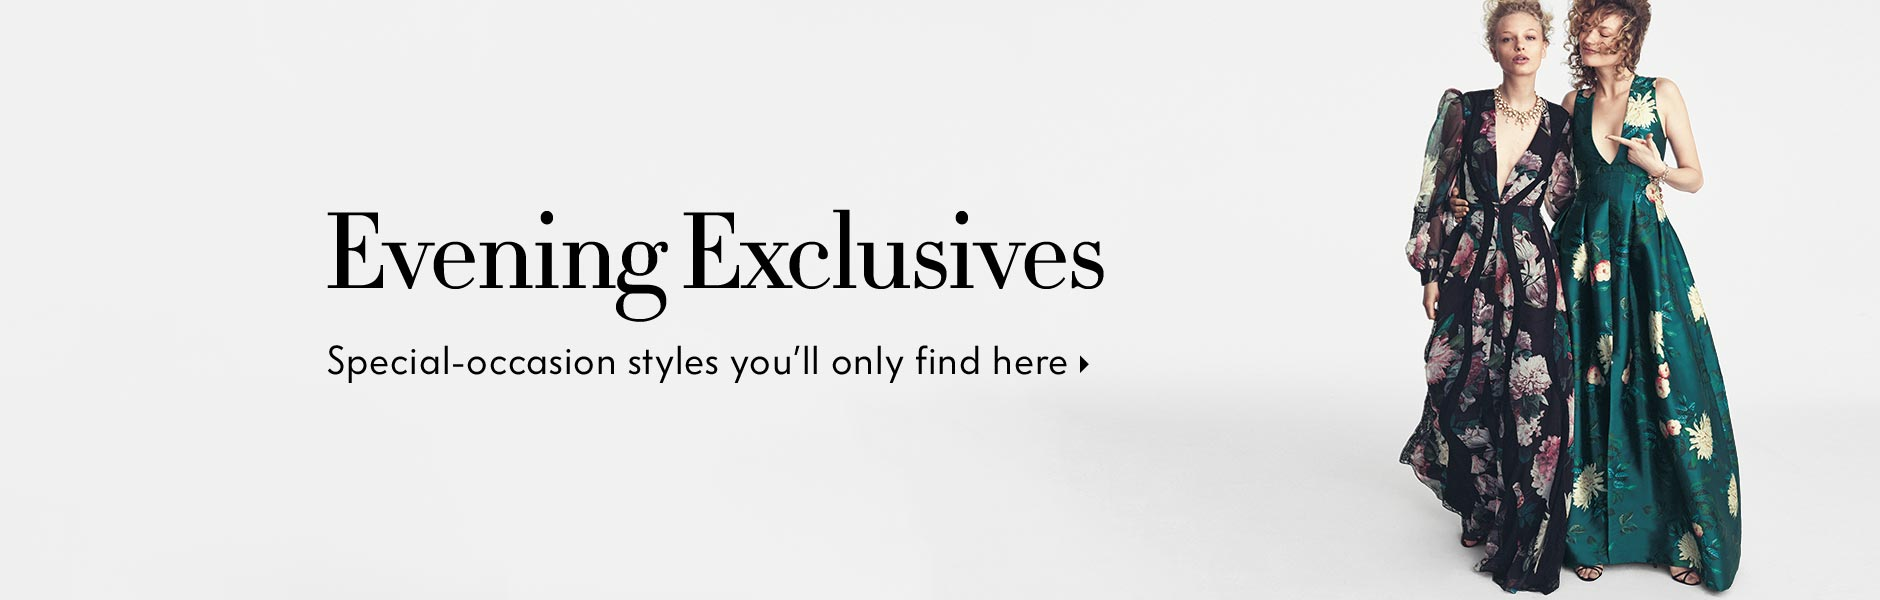 Evening Focus - Your destination for special-occasion styles